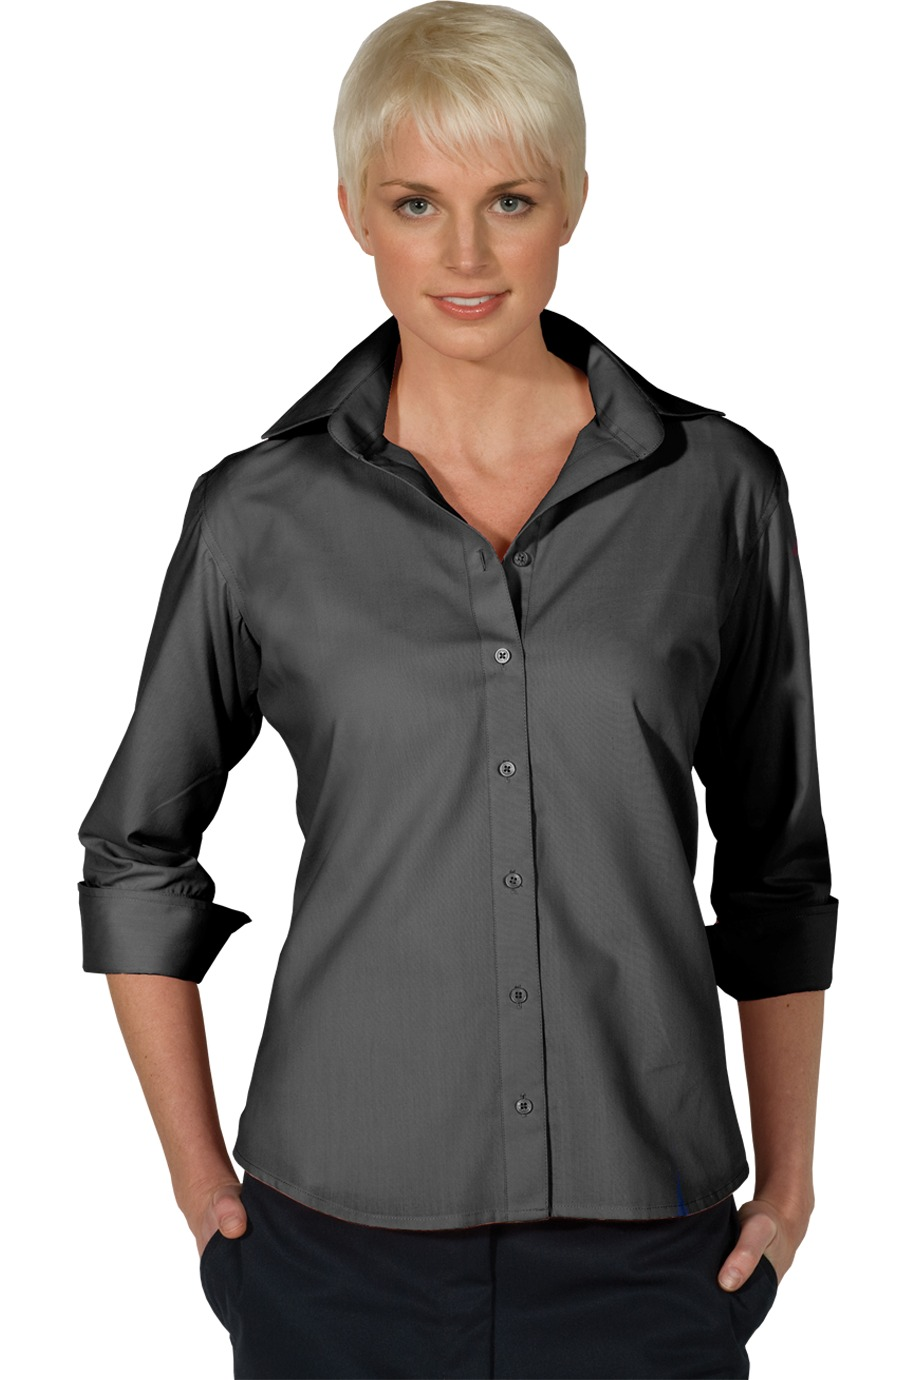 LHE5040-SPG - Ladies V-Neck Button up Poplin 3/4 Length Sleeve